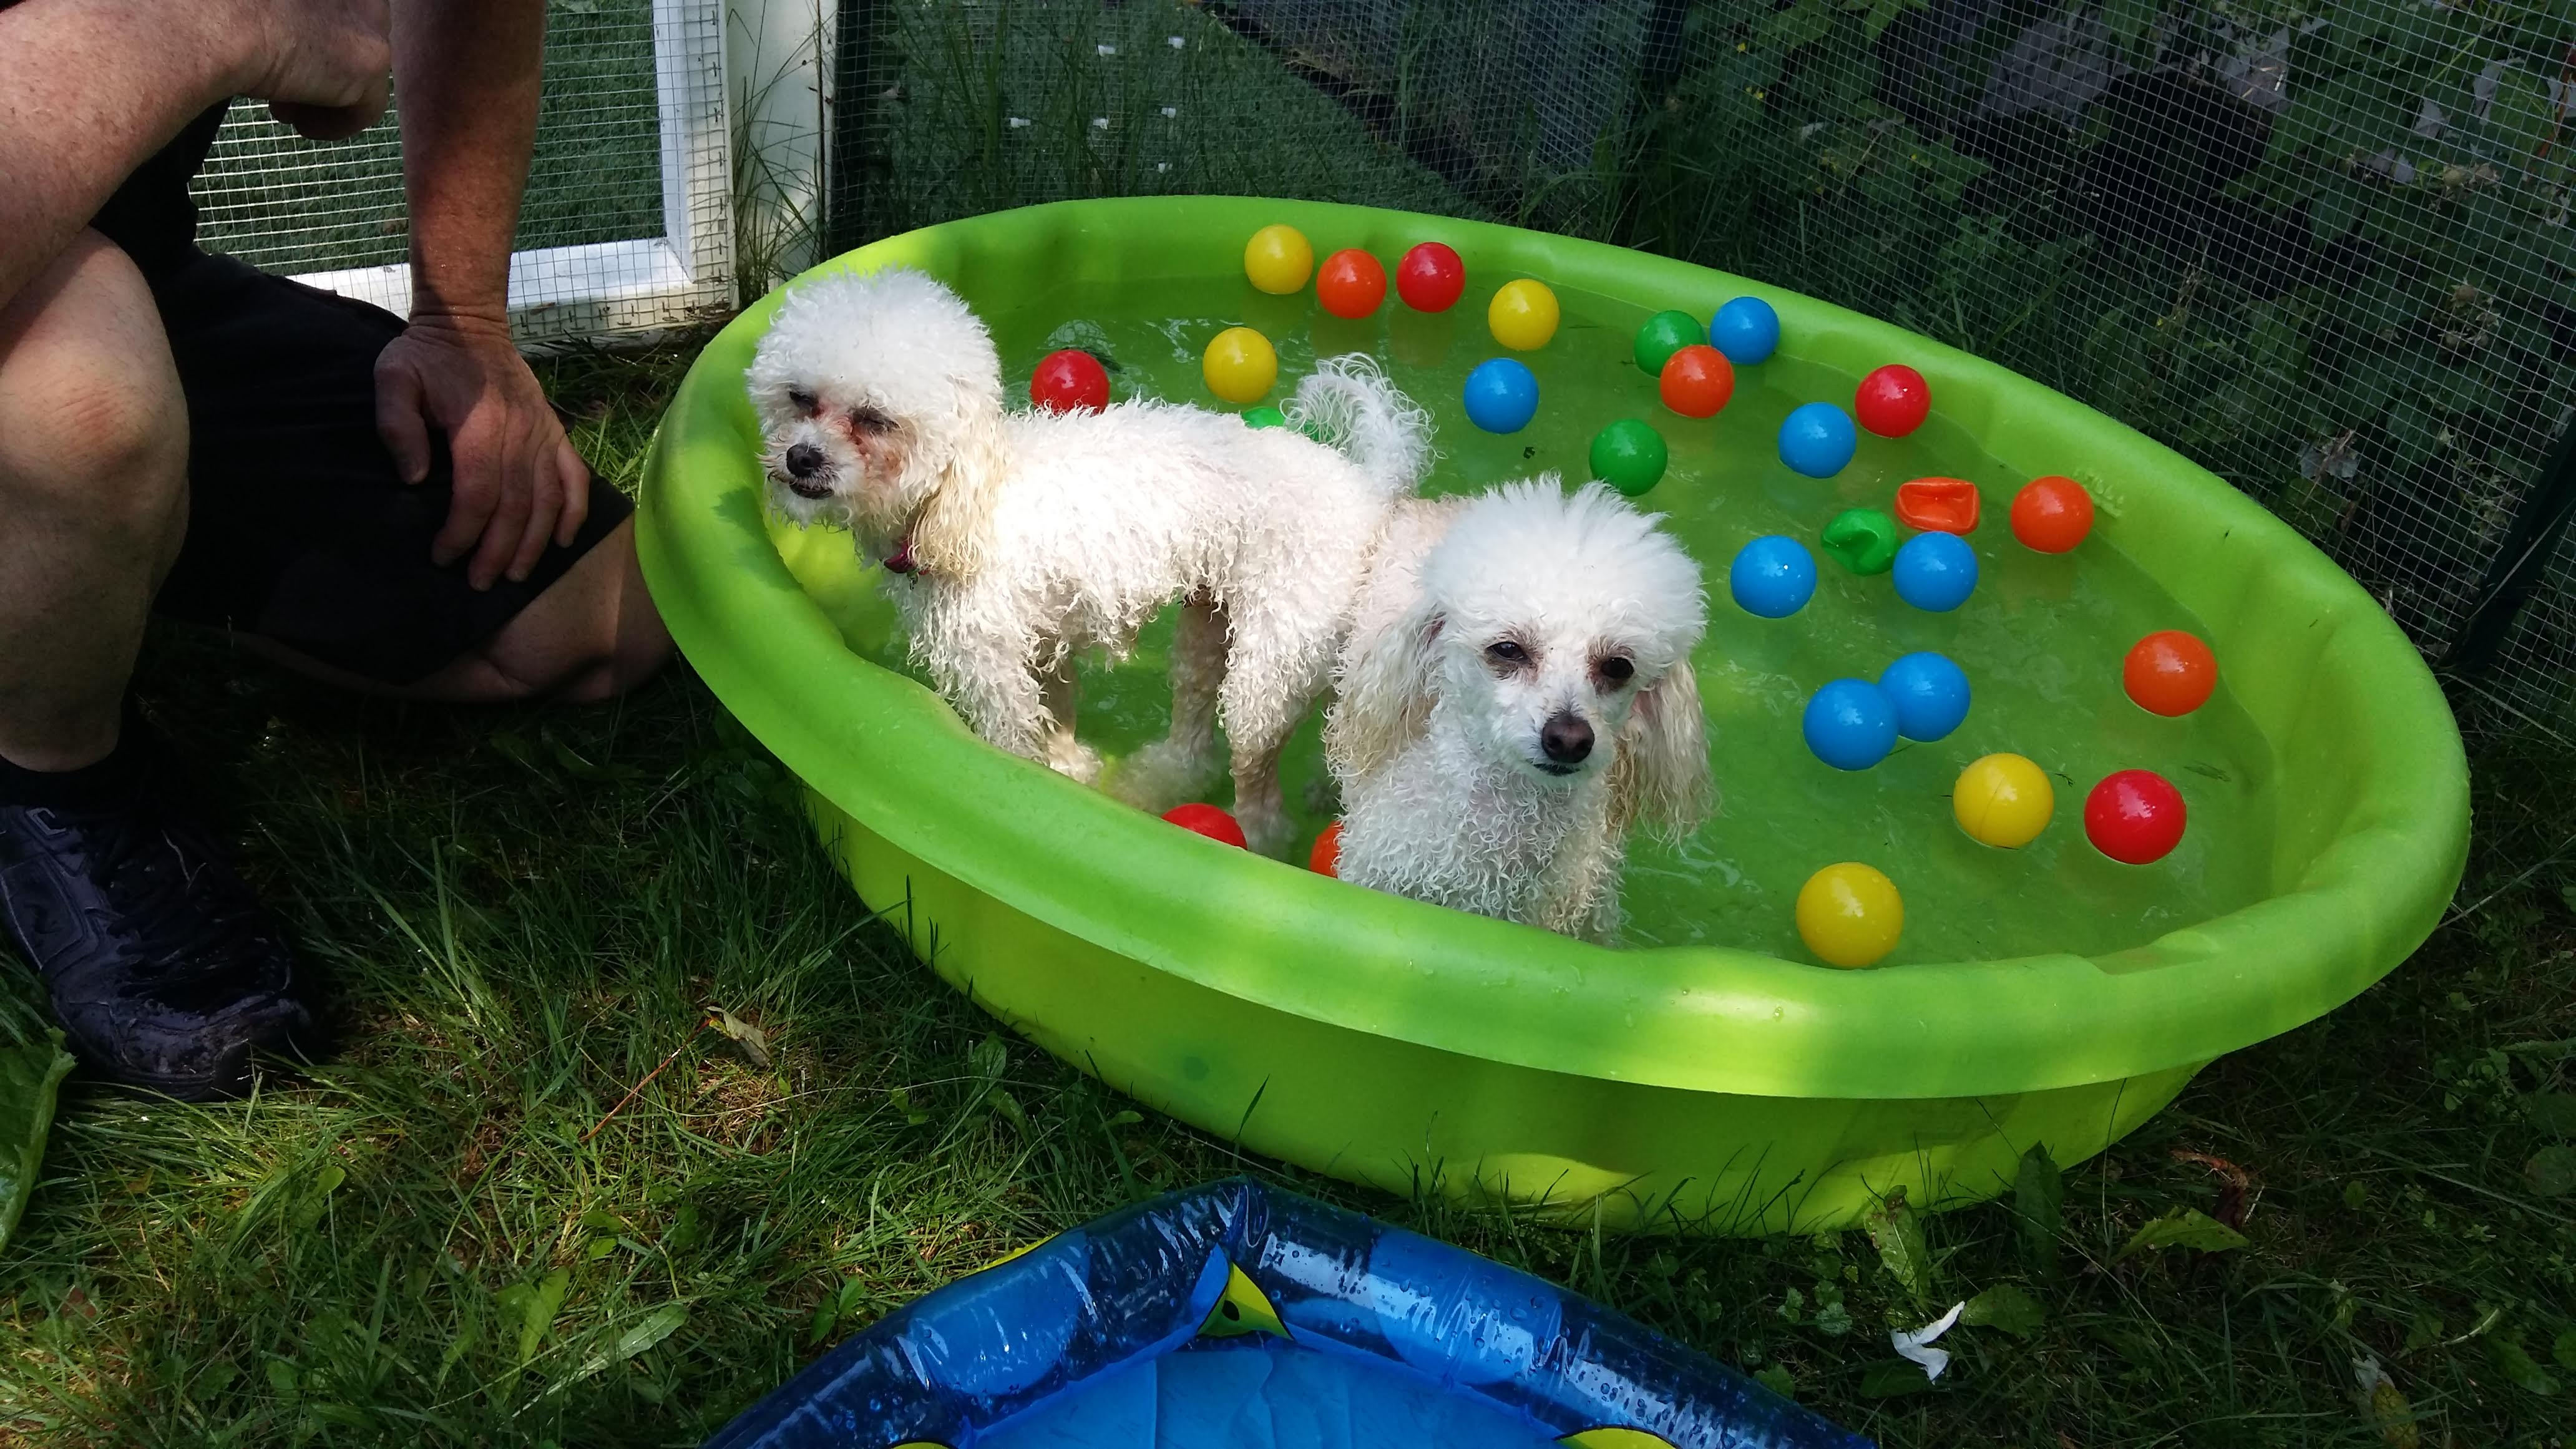 Willyla Garderie les petits chiens mignons